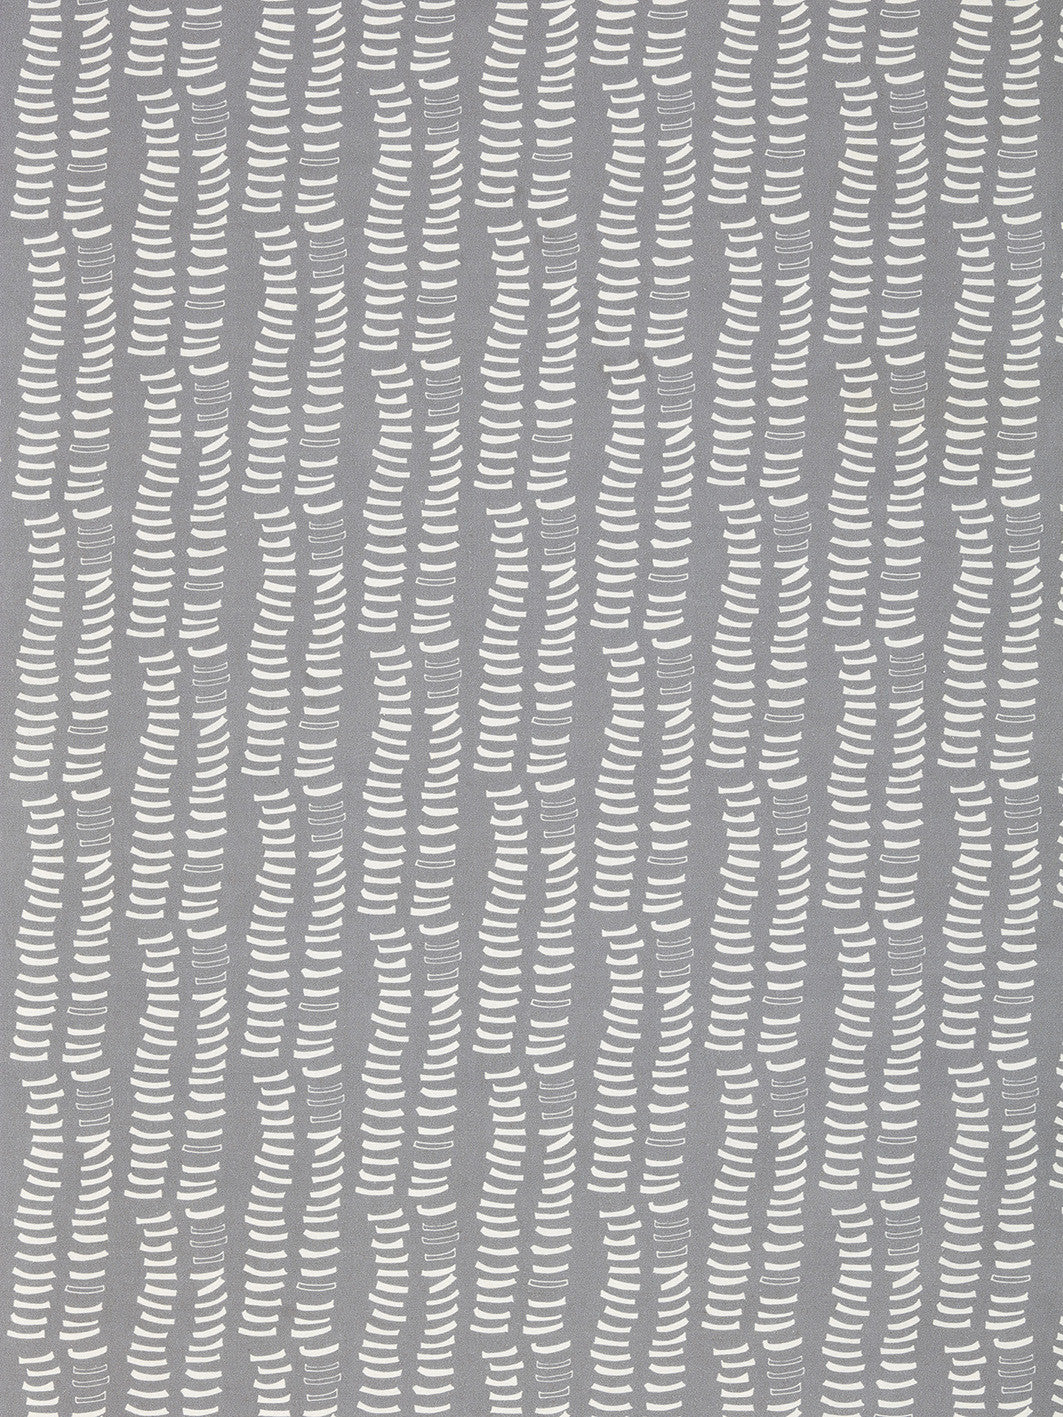 Graphic Adam's Rib Pattern Screen Printed Linen Cotton Canvas Fabric in Light Dove Grey & White